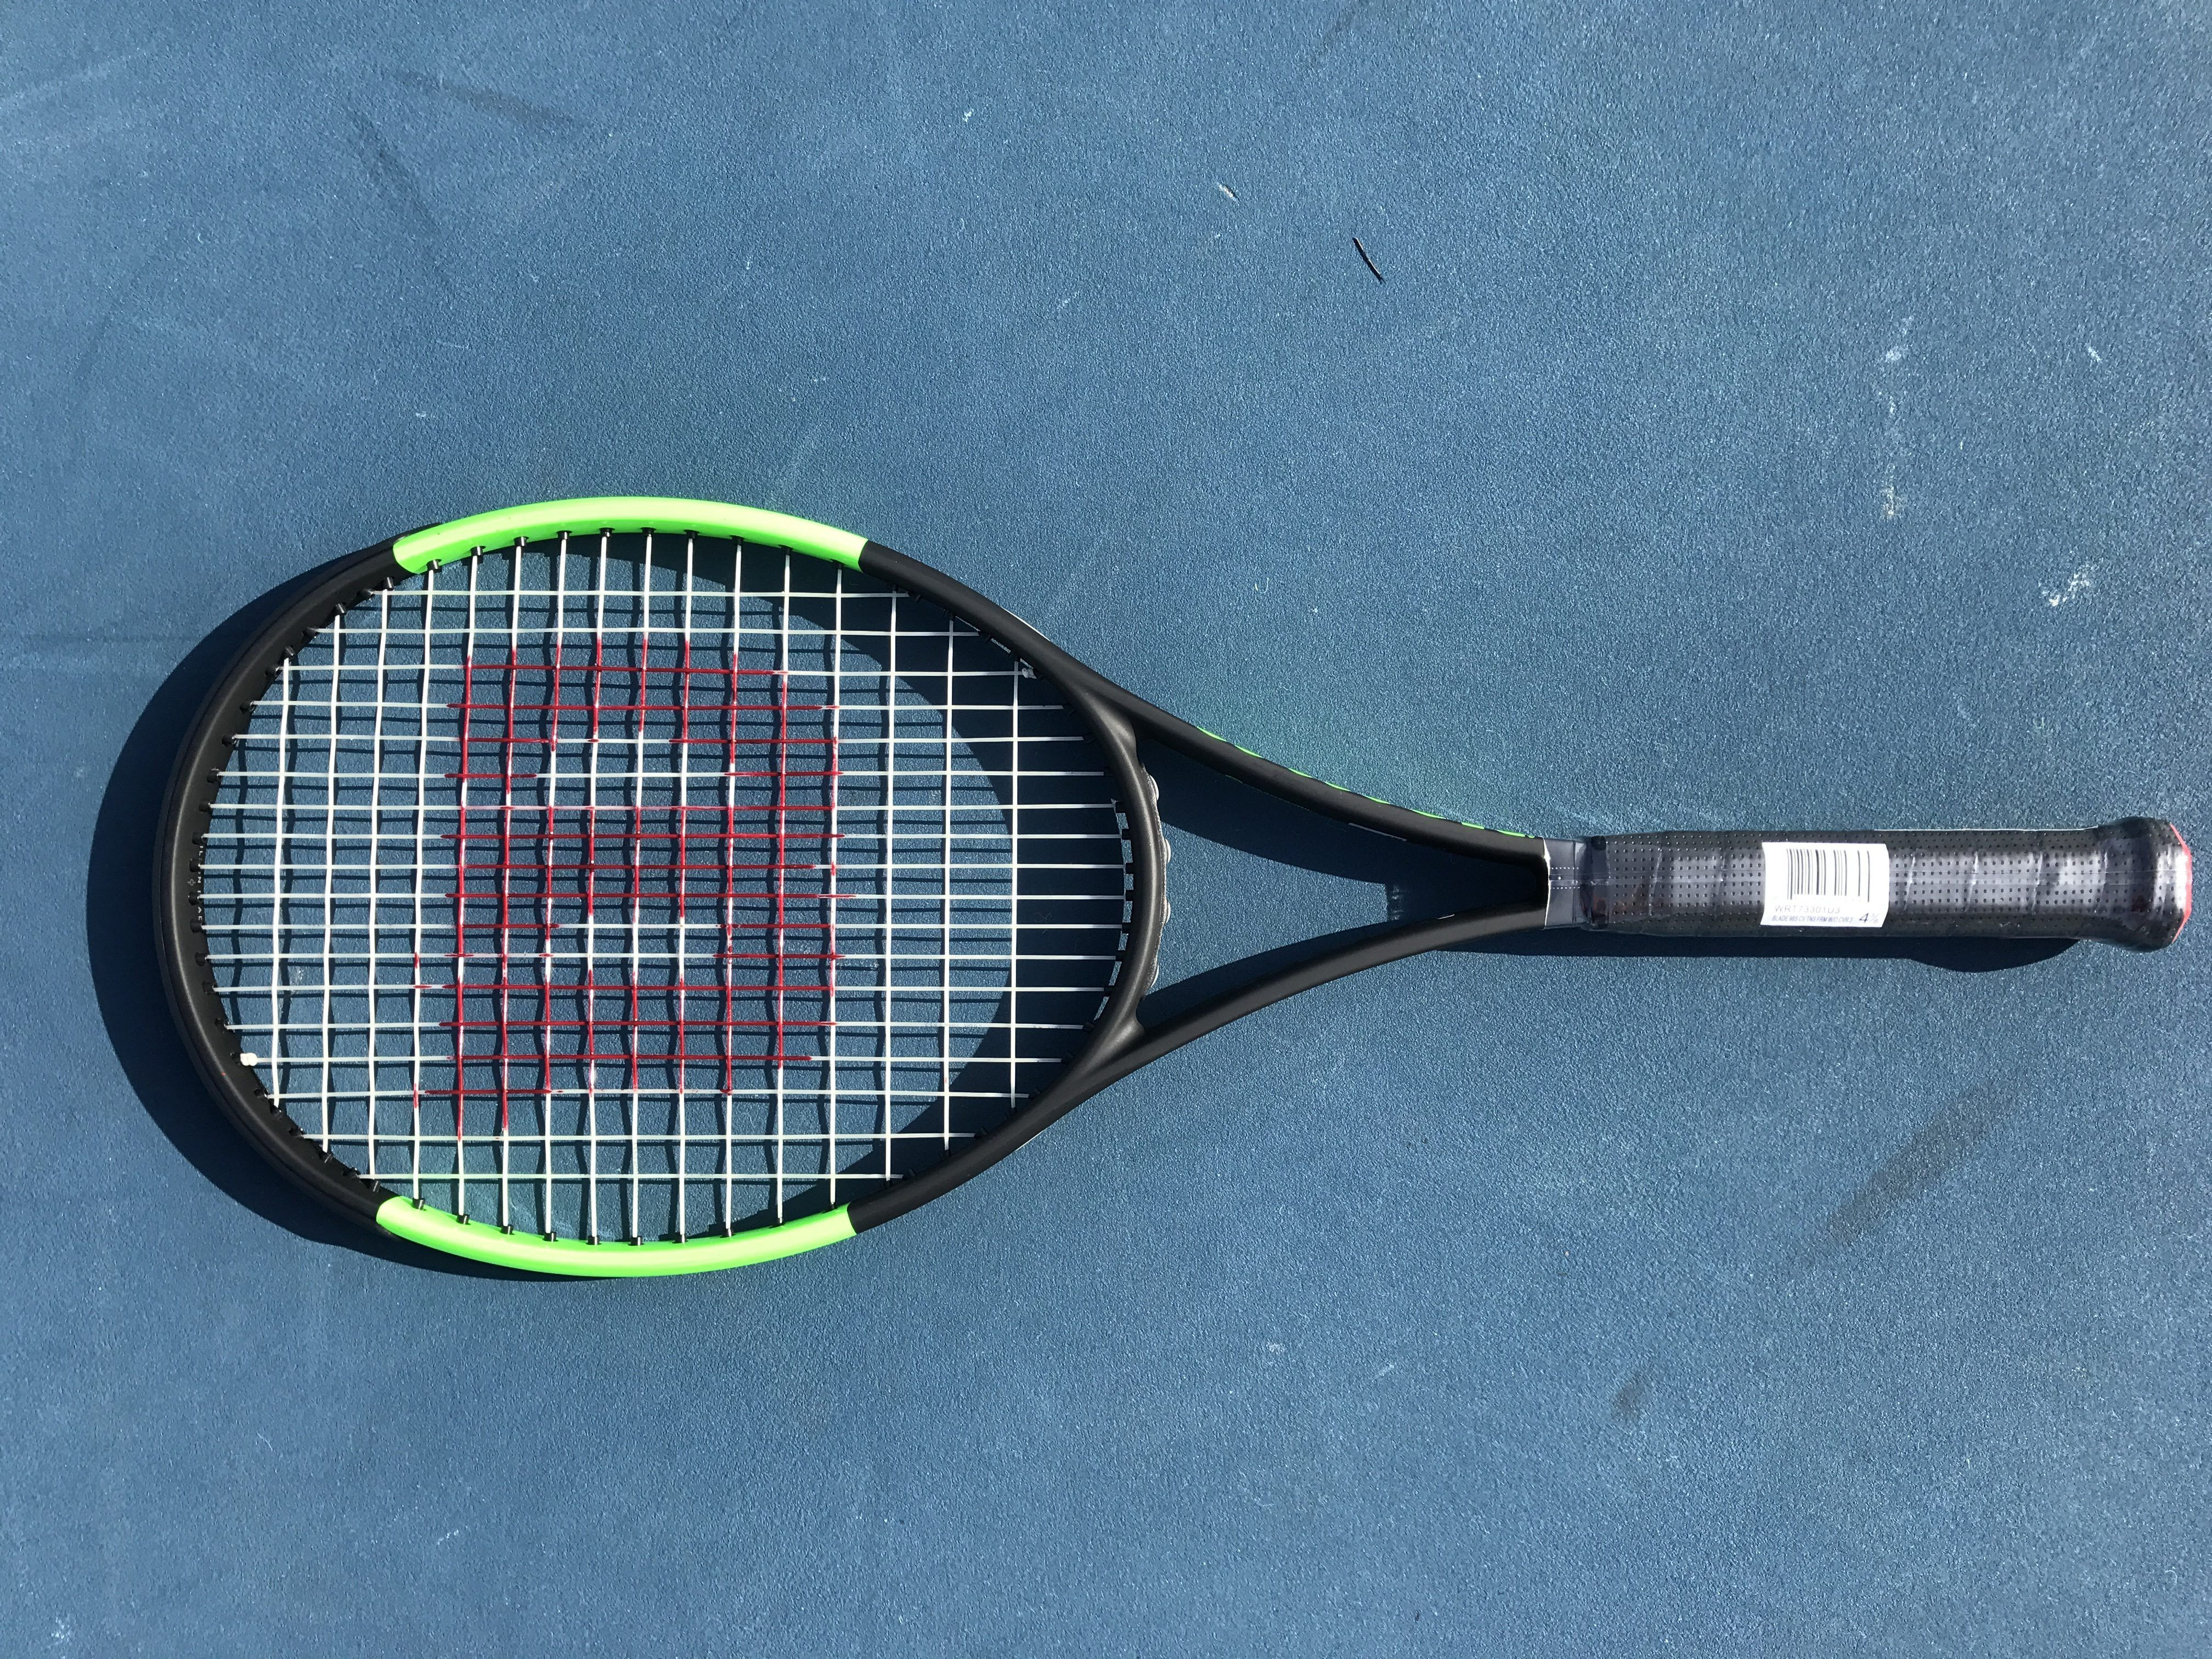 Reviews For The Best Tennis Racquets | Best and NewTennis